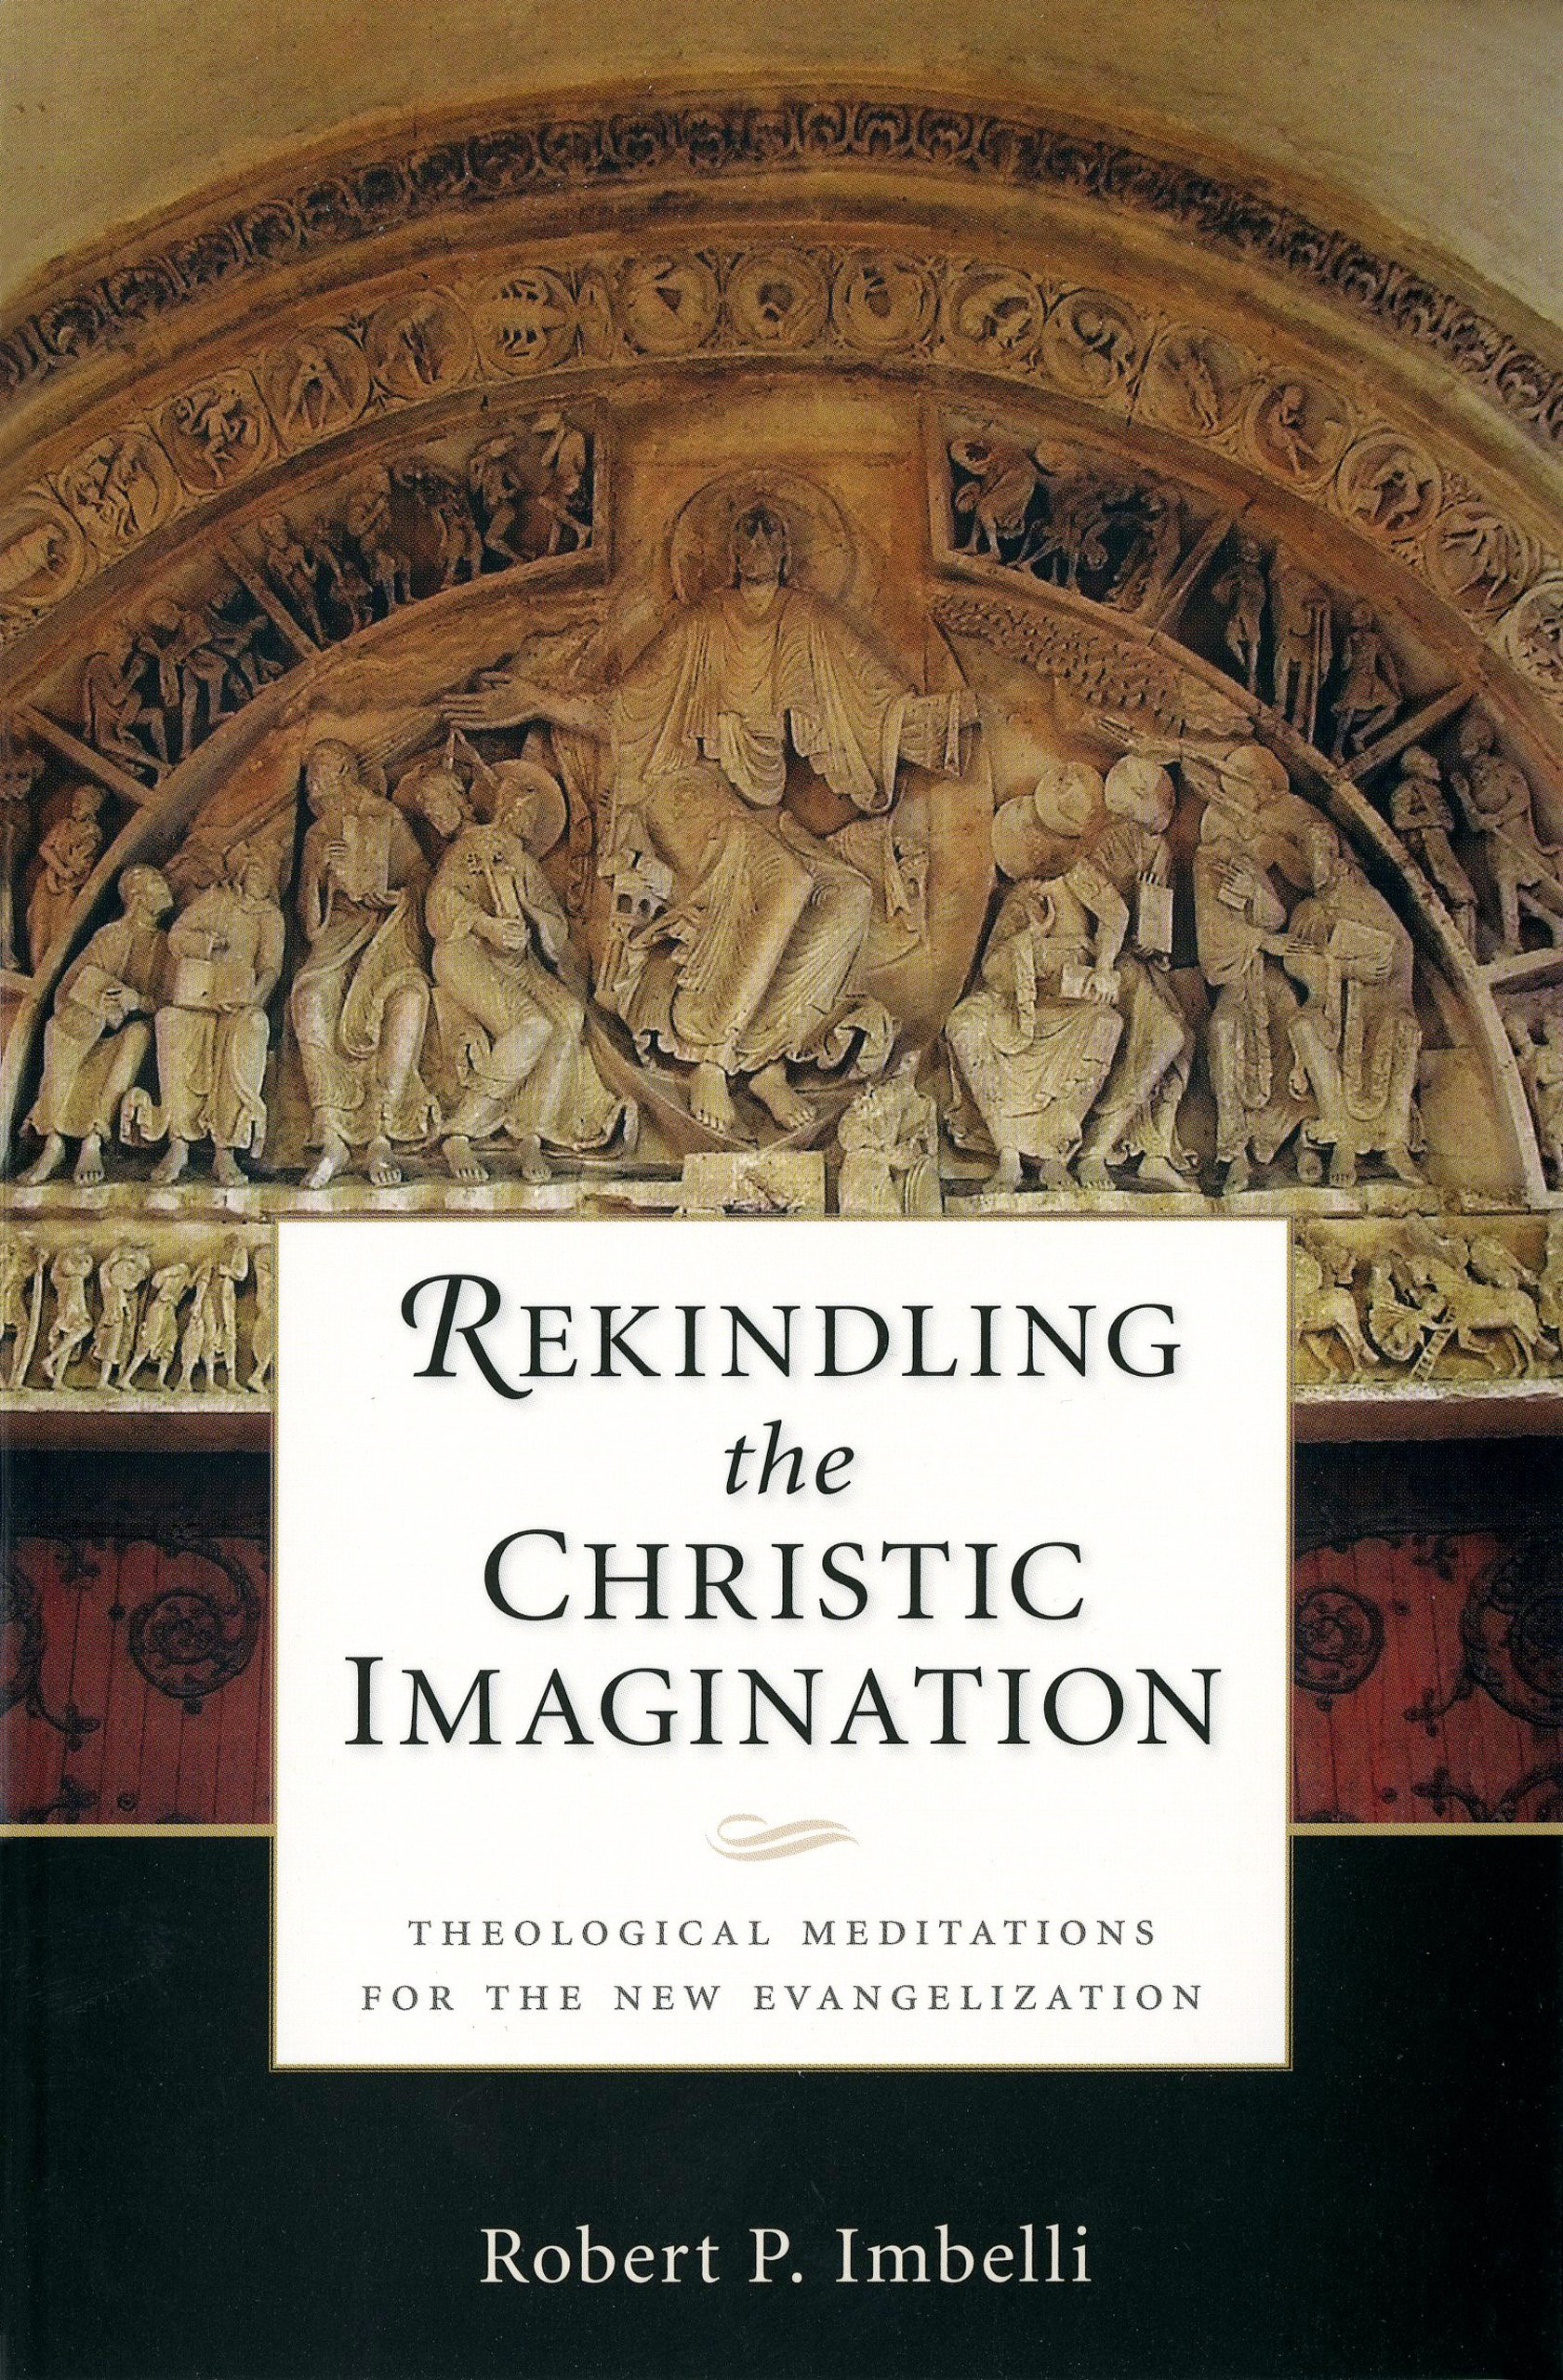 Download Rekindling the Christic Imagination: Theological Meditations for the New Evangelization pdf